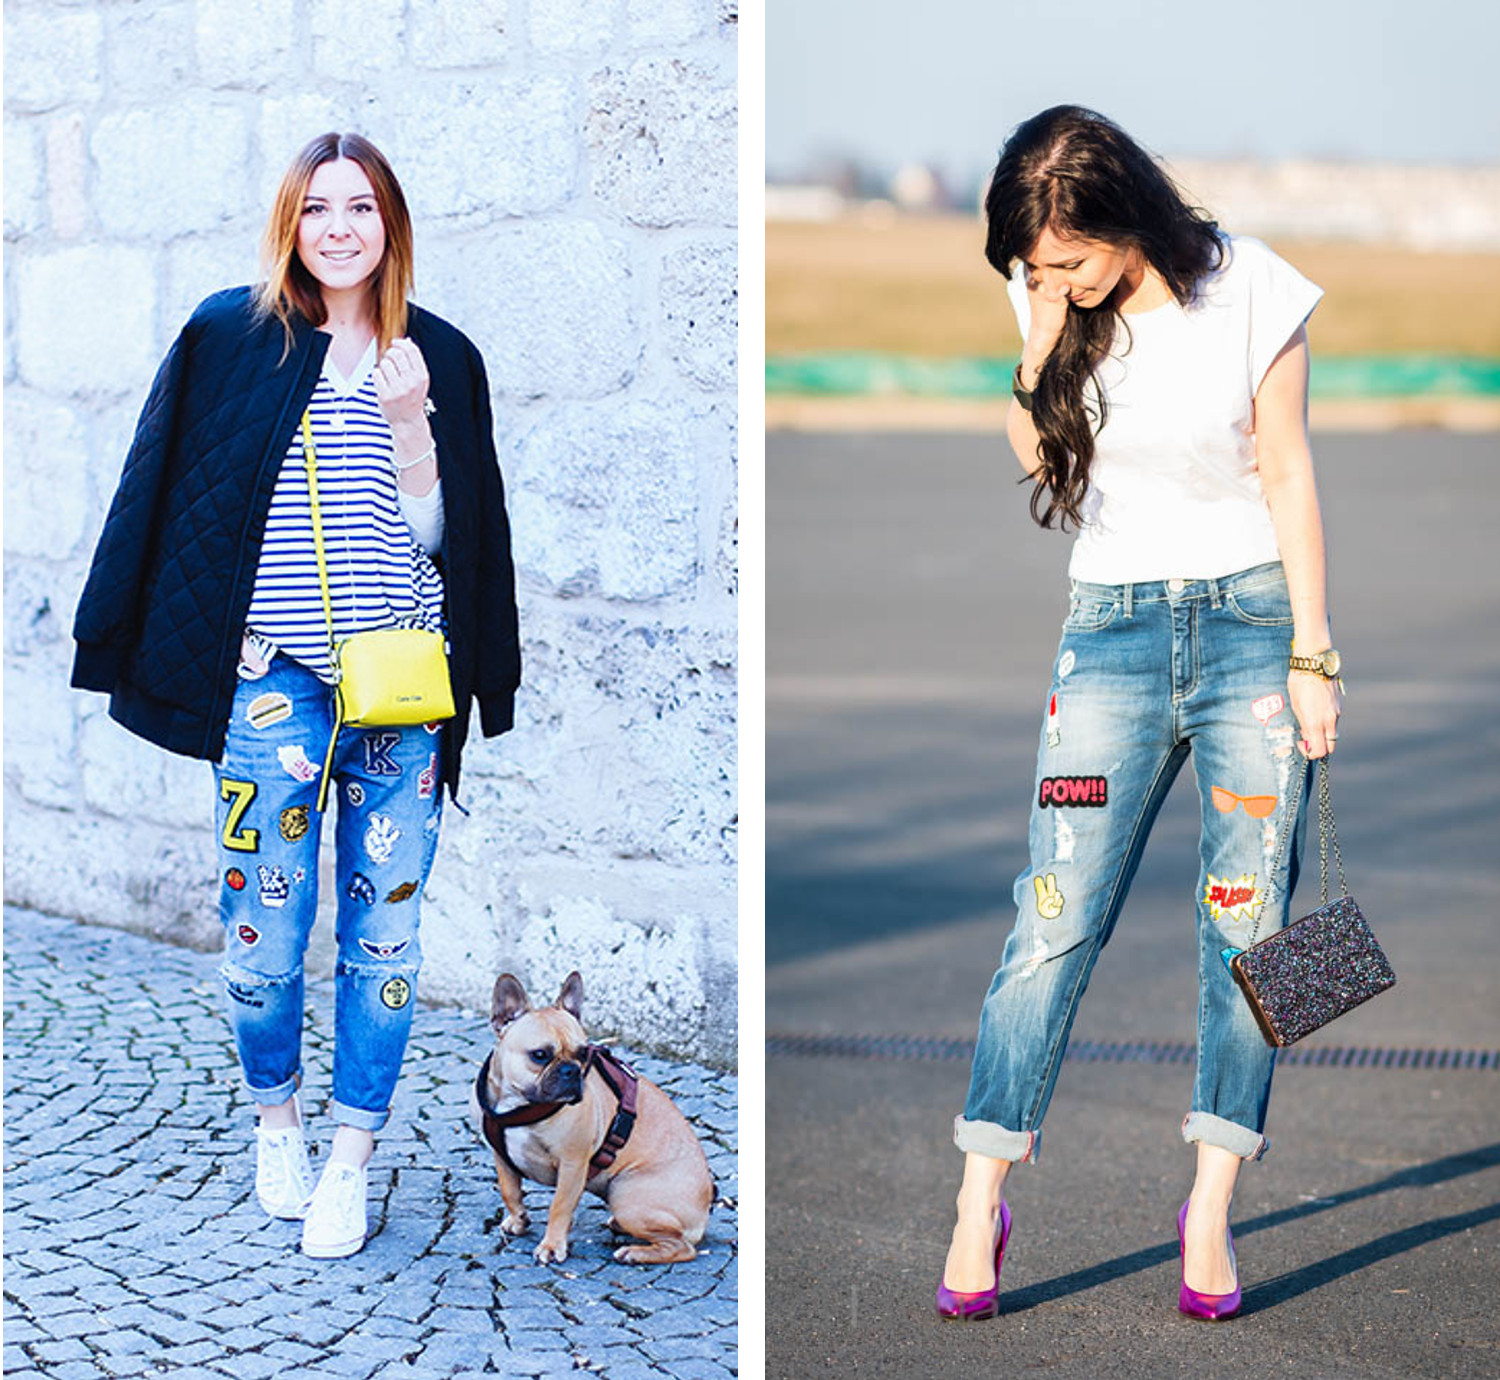 Bezaubernde Nana, bezauberndenana.de, Fashionblog, Denim Lookbook, Denim Trends 2016, Jeans Outfits, Jeans Latzhose, Jeans mit Patches, who is mocca?, whoismocca.com, Julies Dresscode, juliesdresscode.de